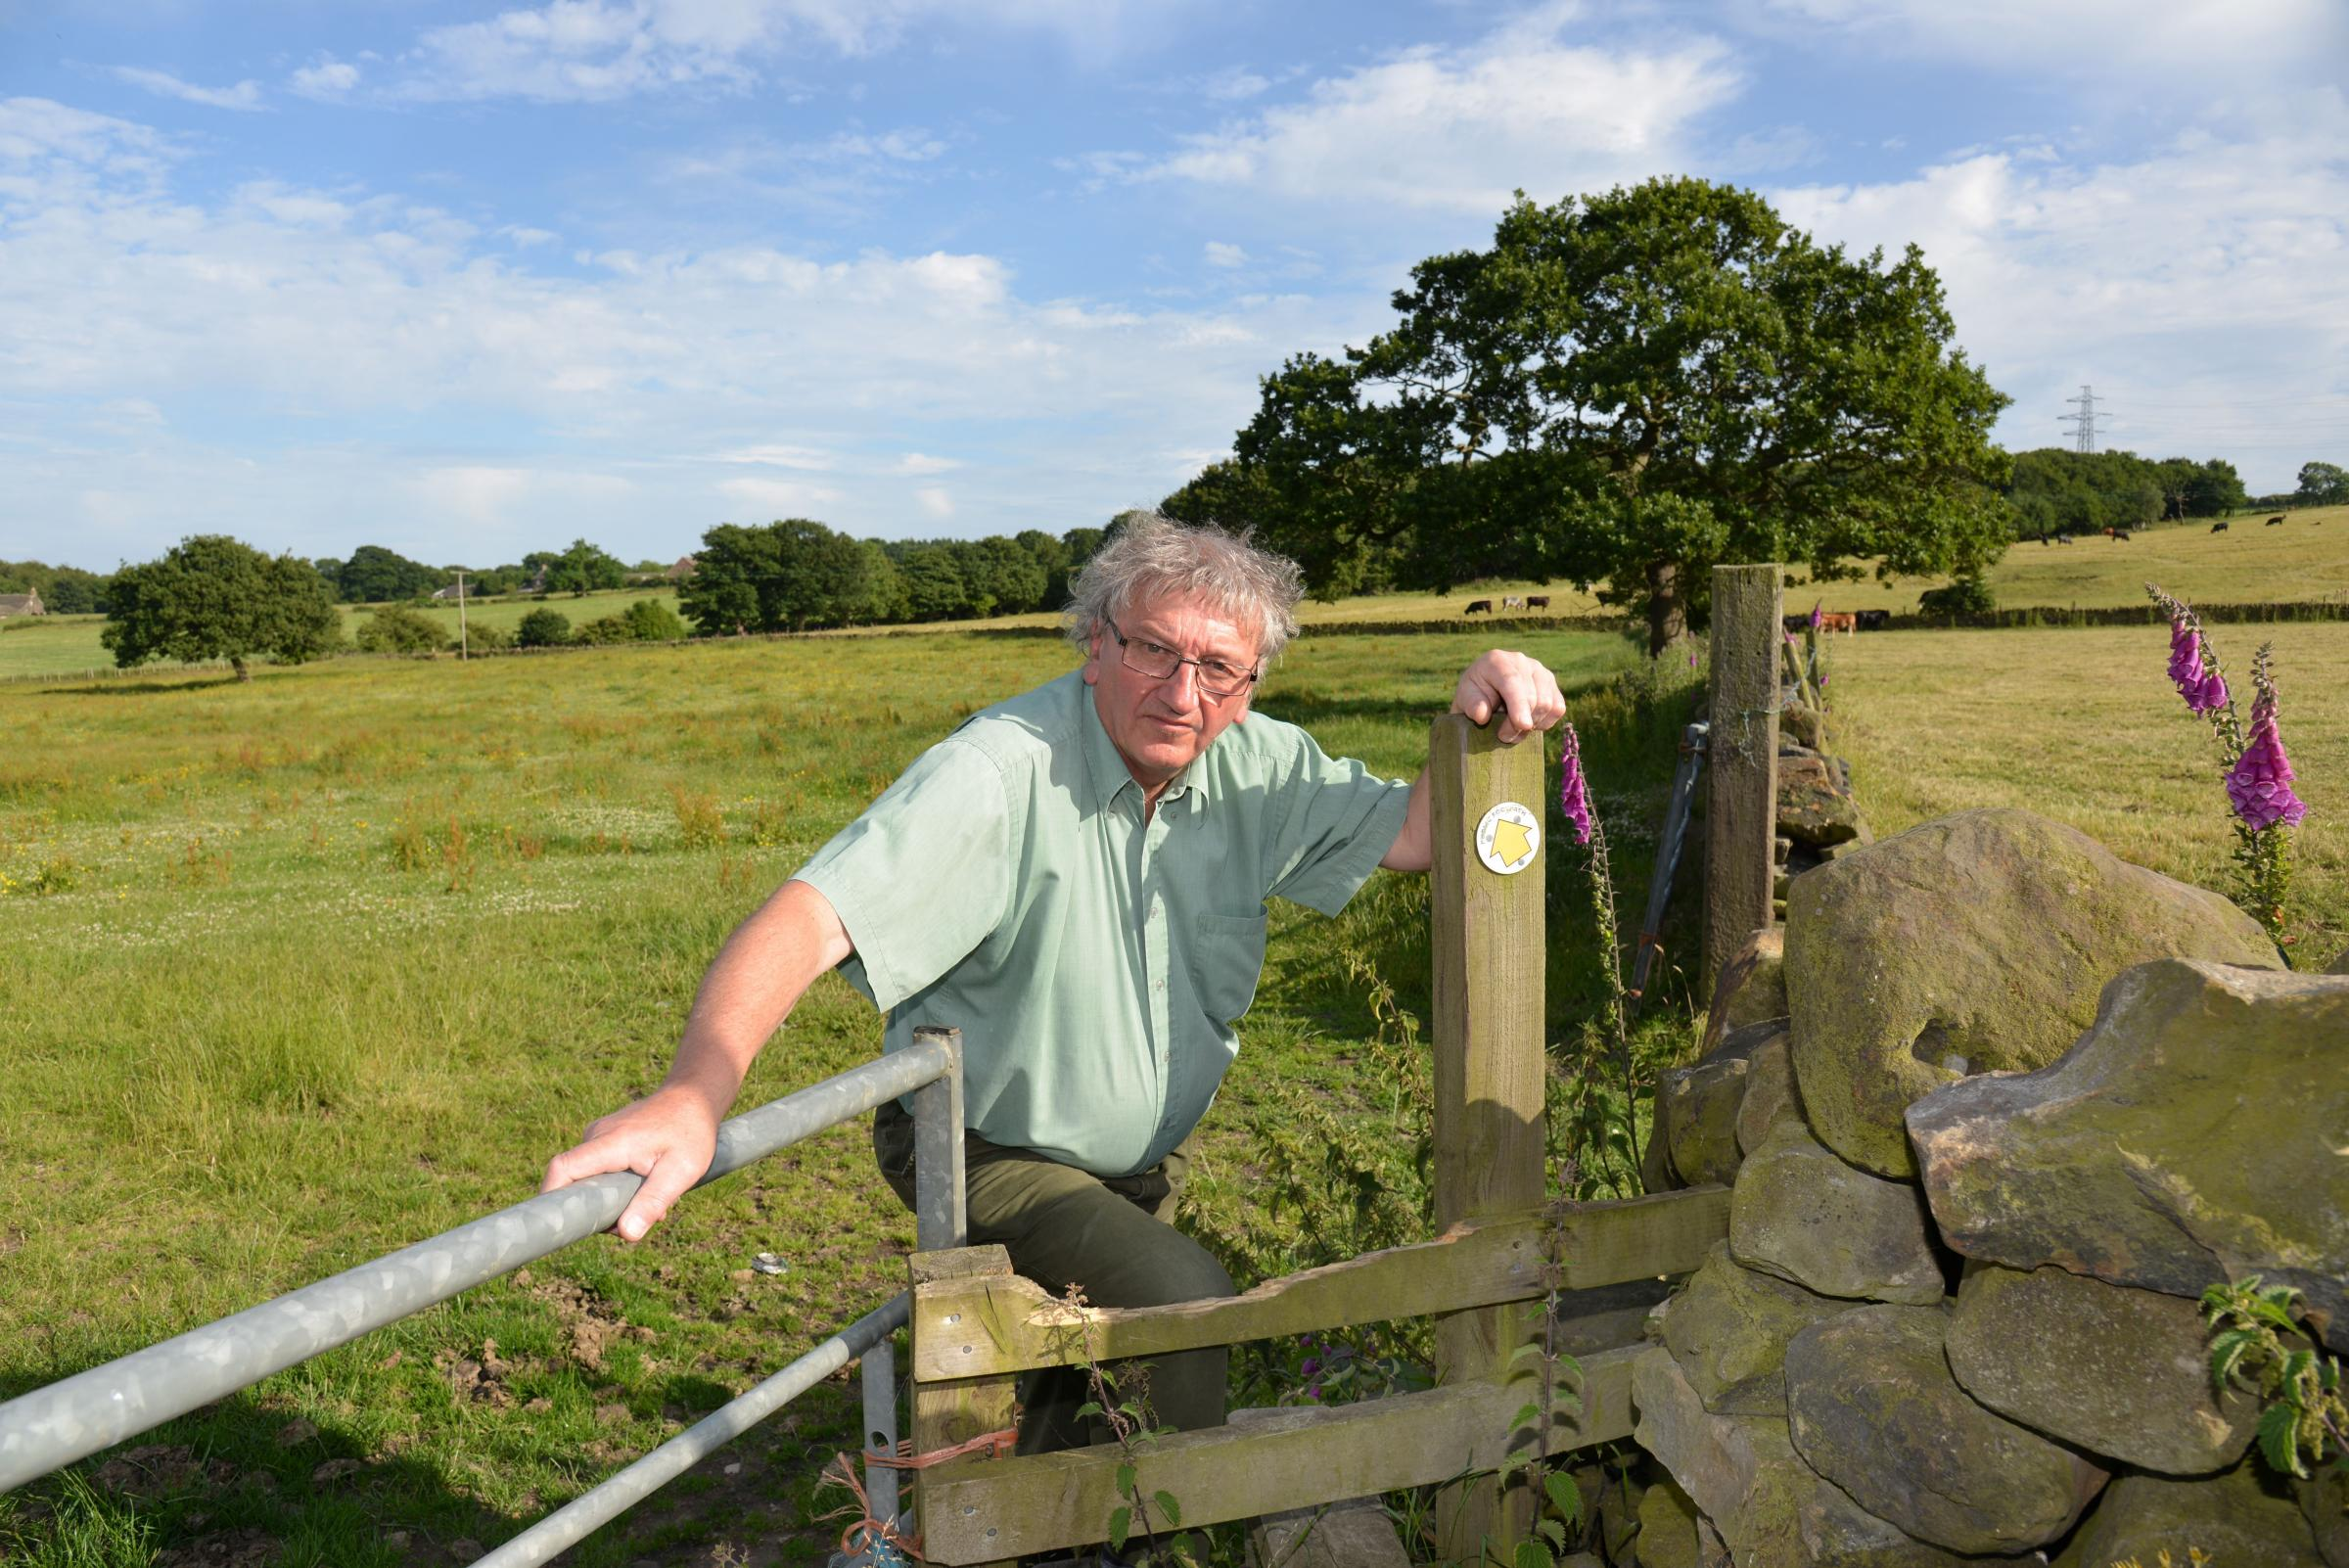 FRESH HOPE: The Rev Canon Gordon Dey looking over Green Belt land in the Tong Valley